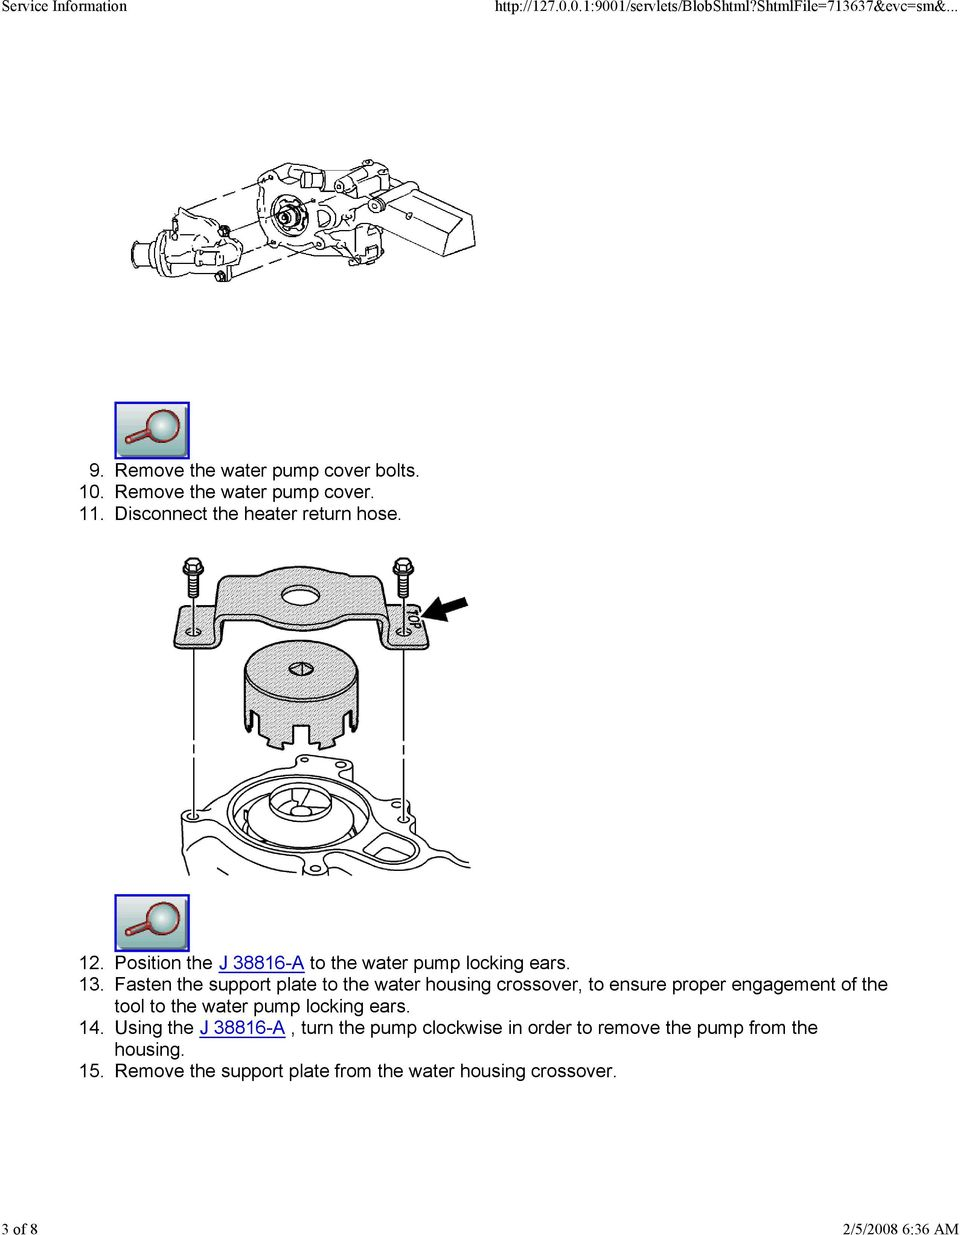 Water Pump Replacement - PDF